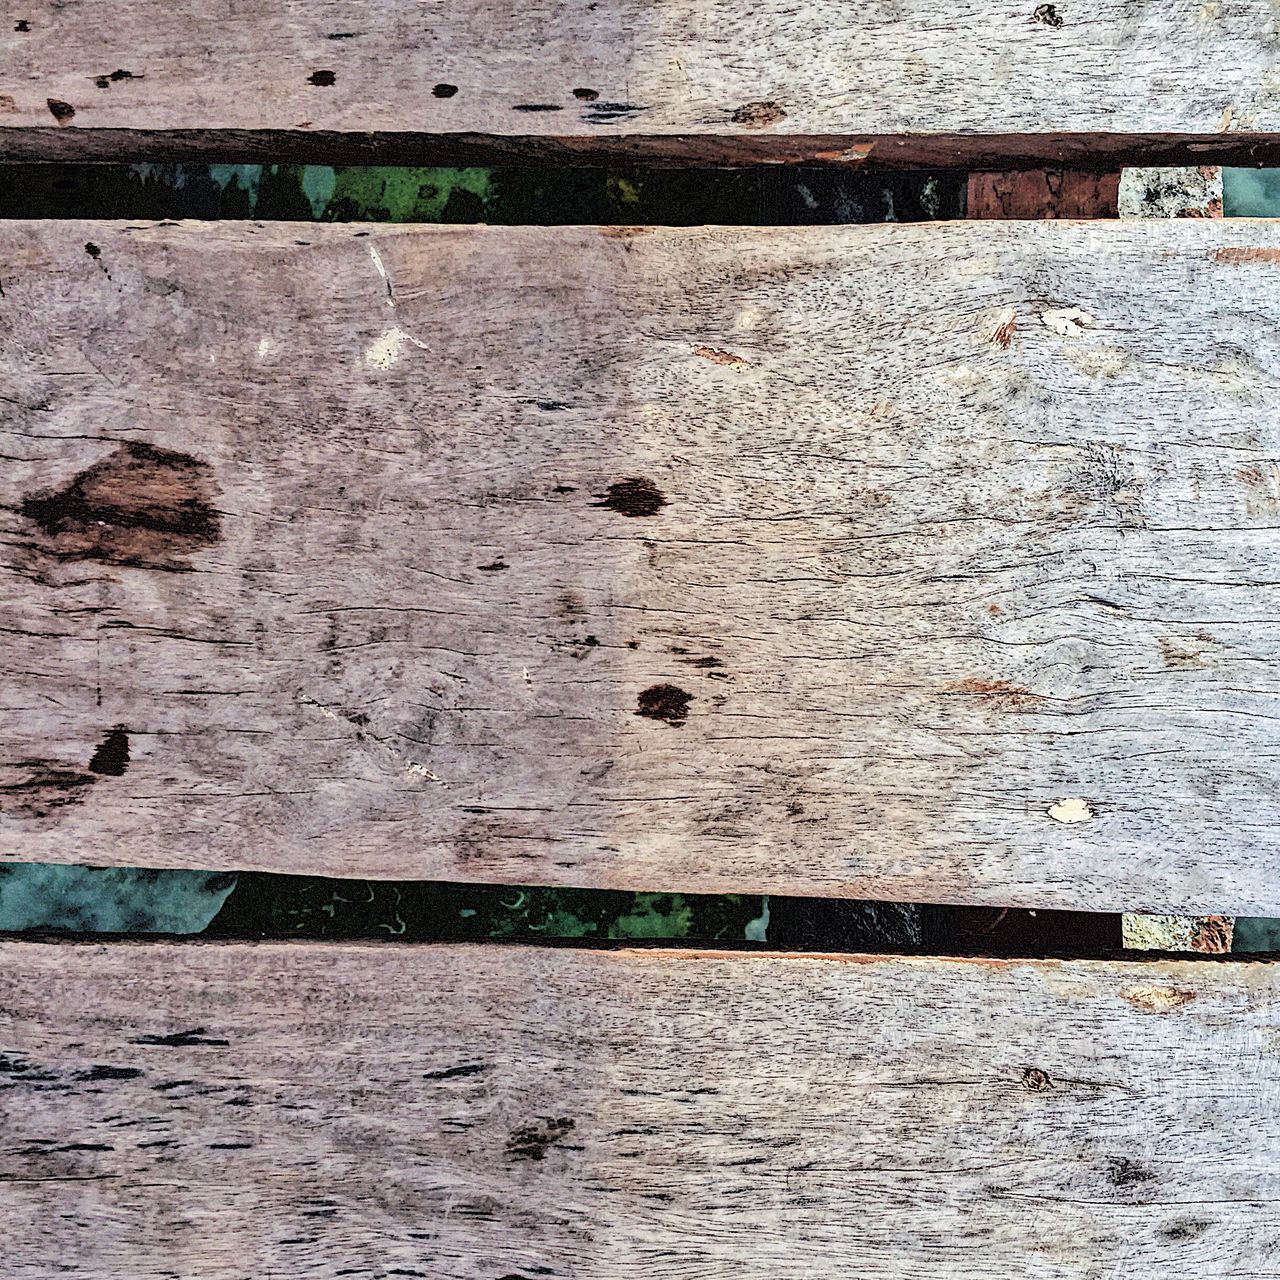 Day Outdoors No People Built Structure Textured  Architecture Close-up Beach Aesthetics Wood Dock Cracks Contrast Mood Fade